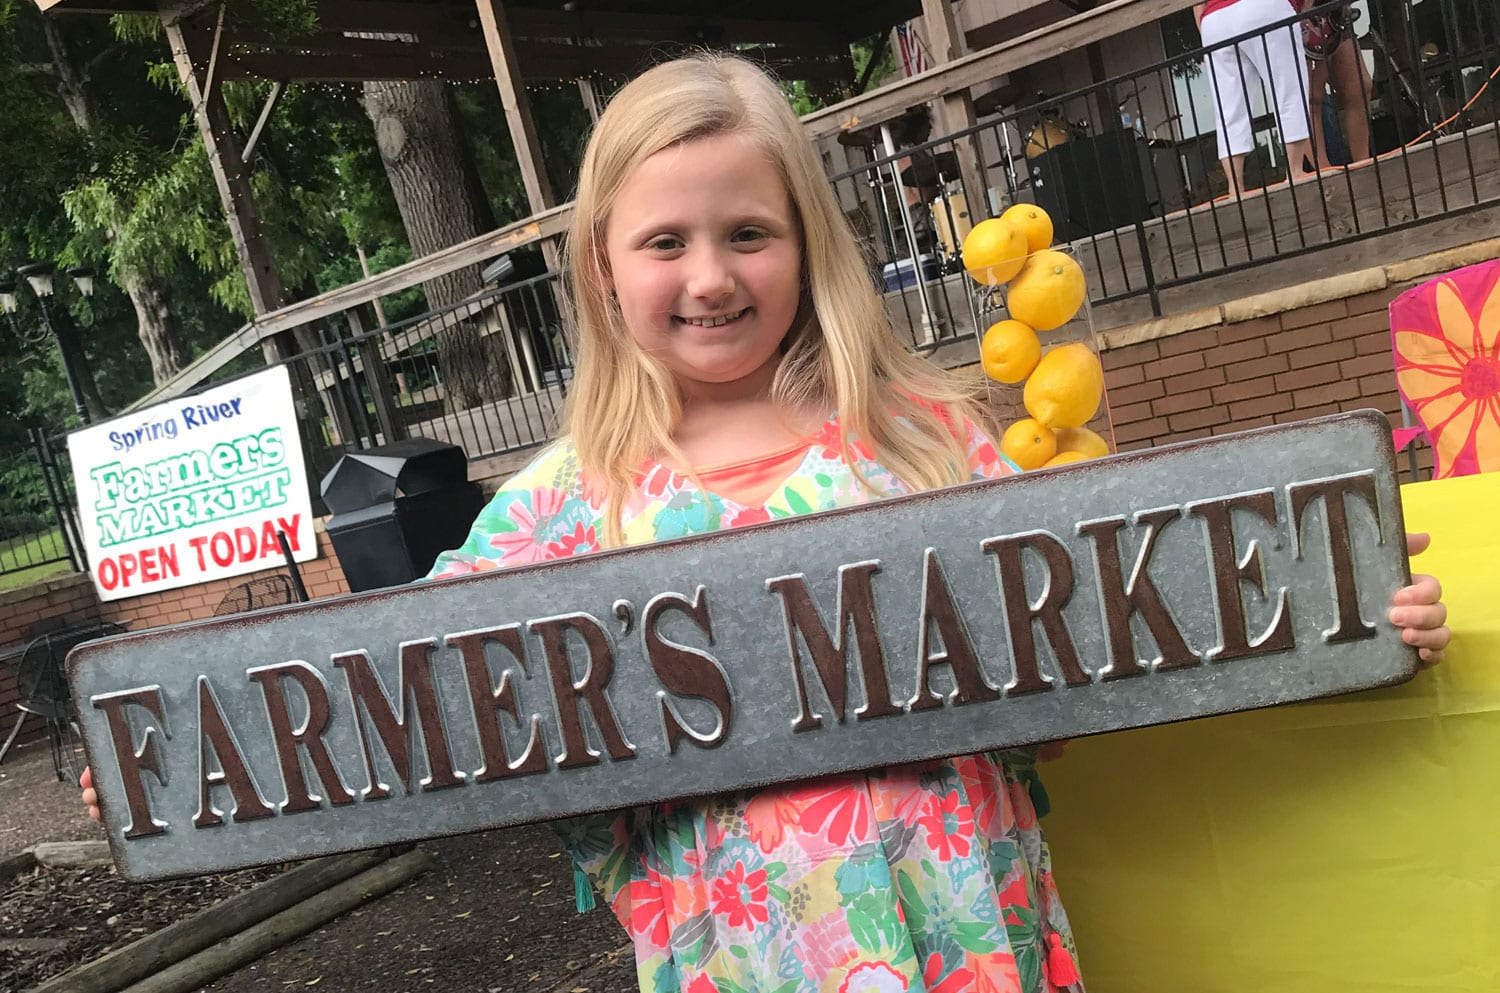 Little Girl Holding a Rustic Farmer's Market Sign